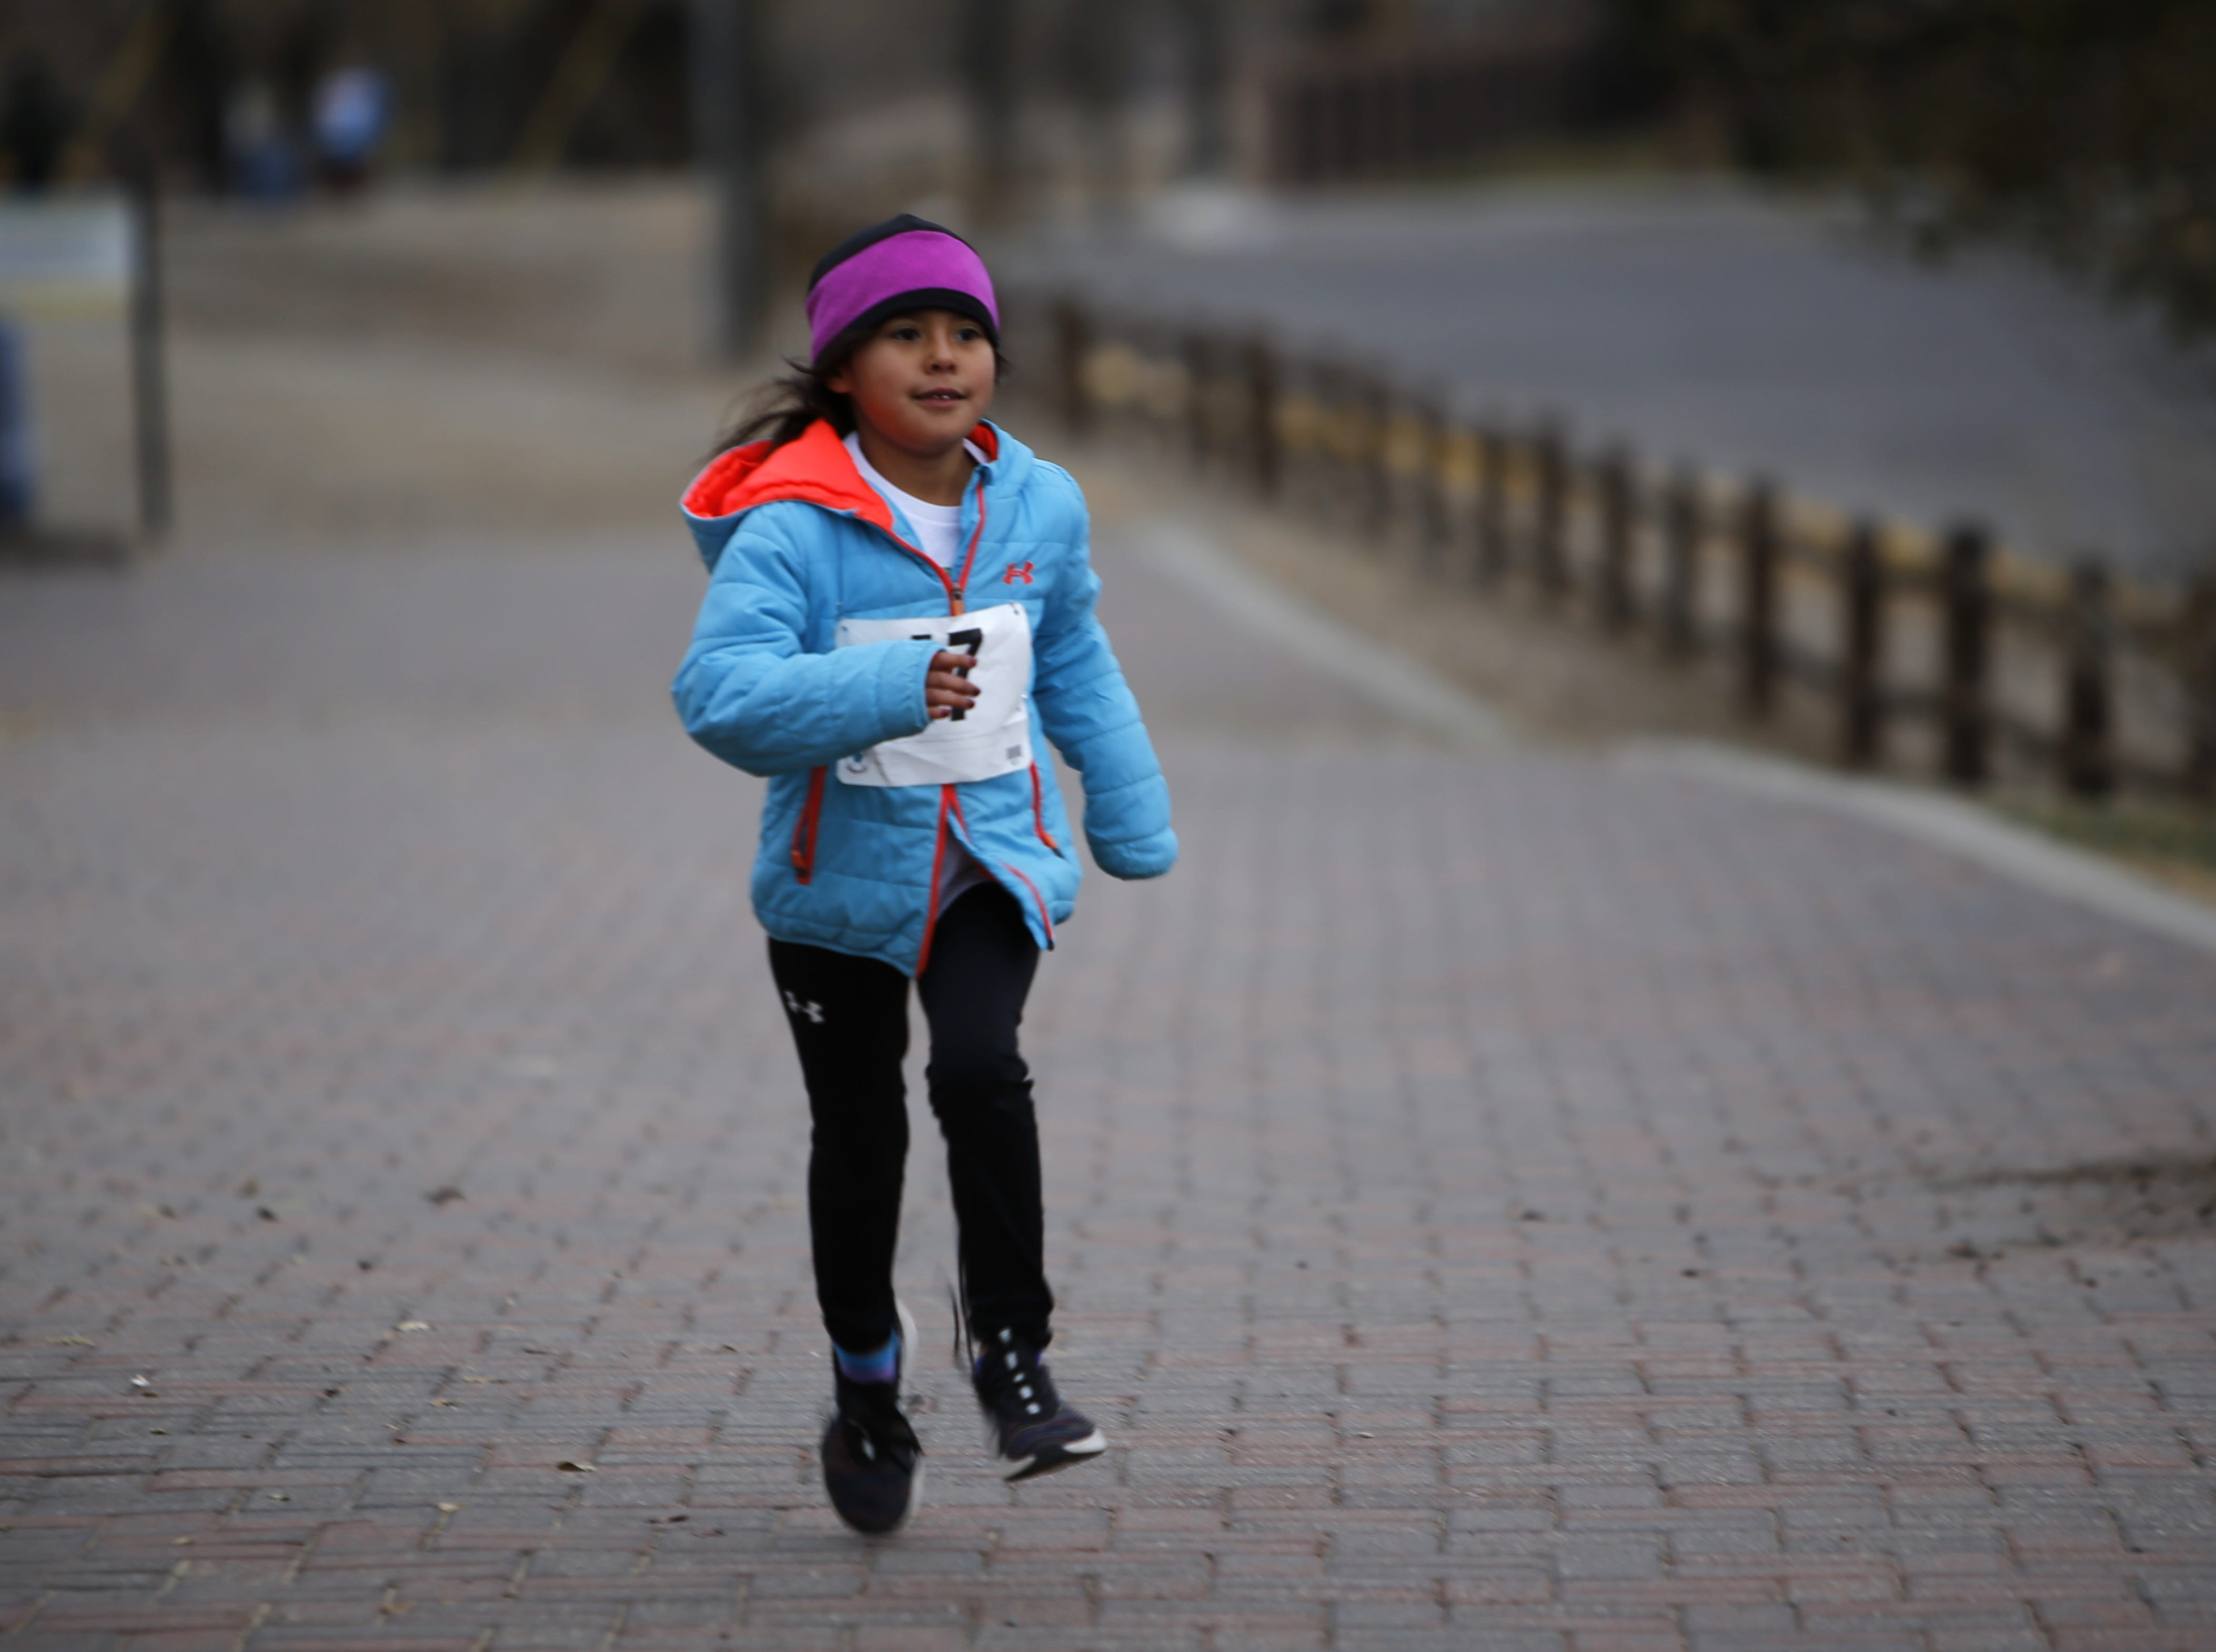 Kailyn Lake, 7, runs a 400-meter children's race during the Gratitude Run, Thursday, Nov. 22, 2018, in Berg Park in Farmington.